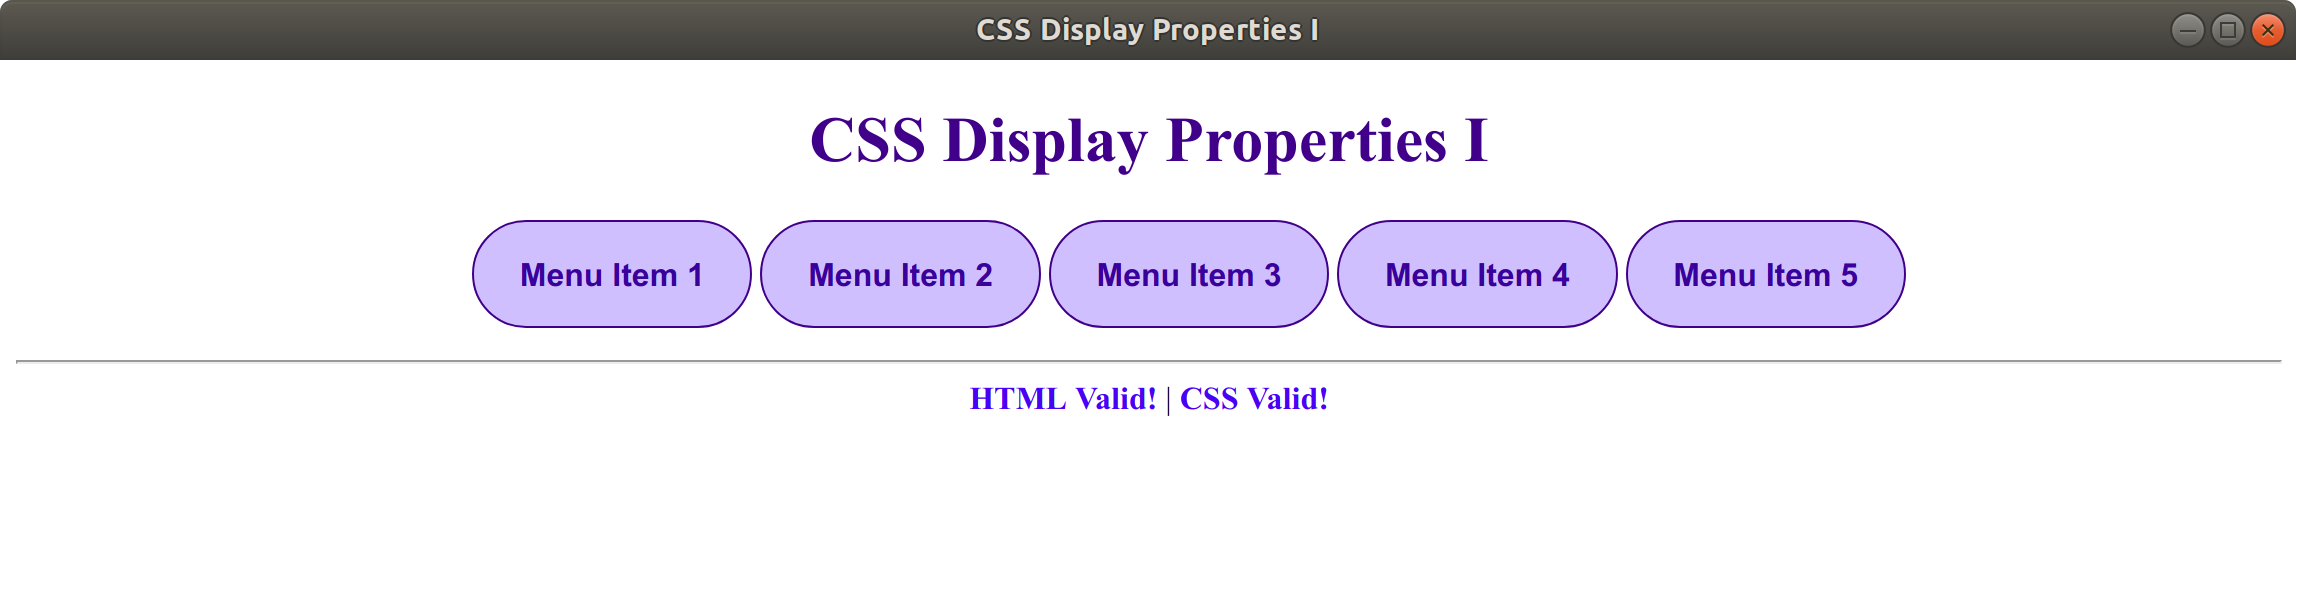 Getting Down with CSS